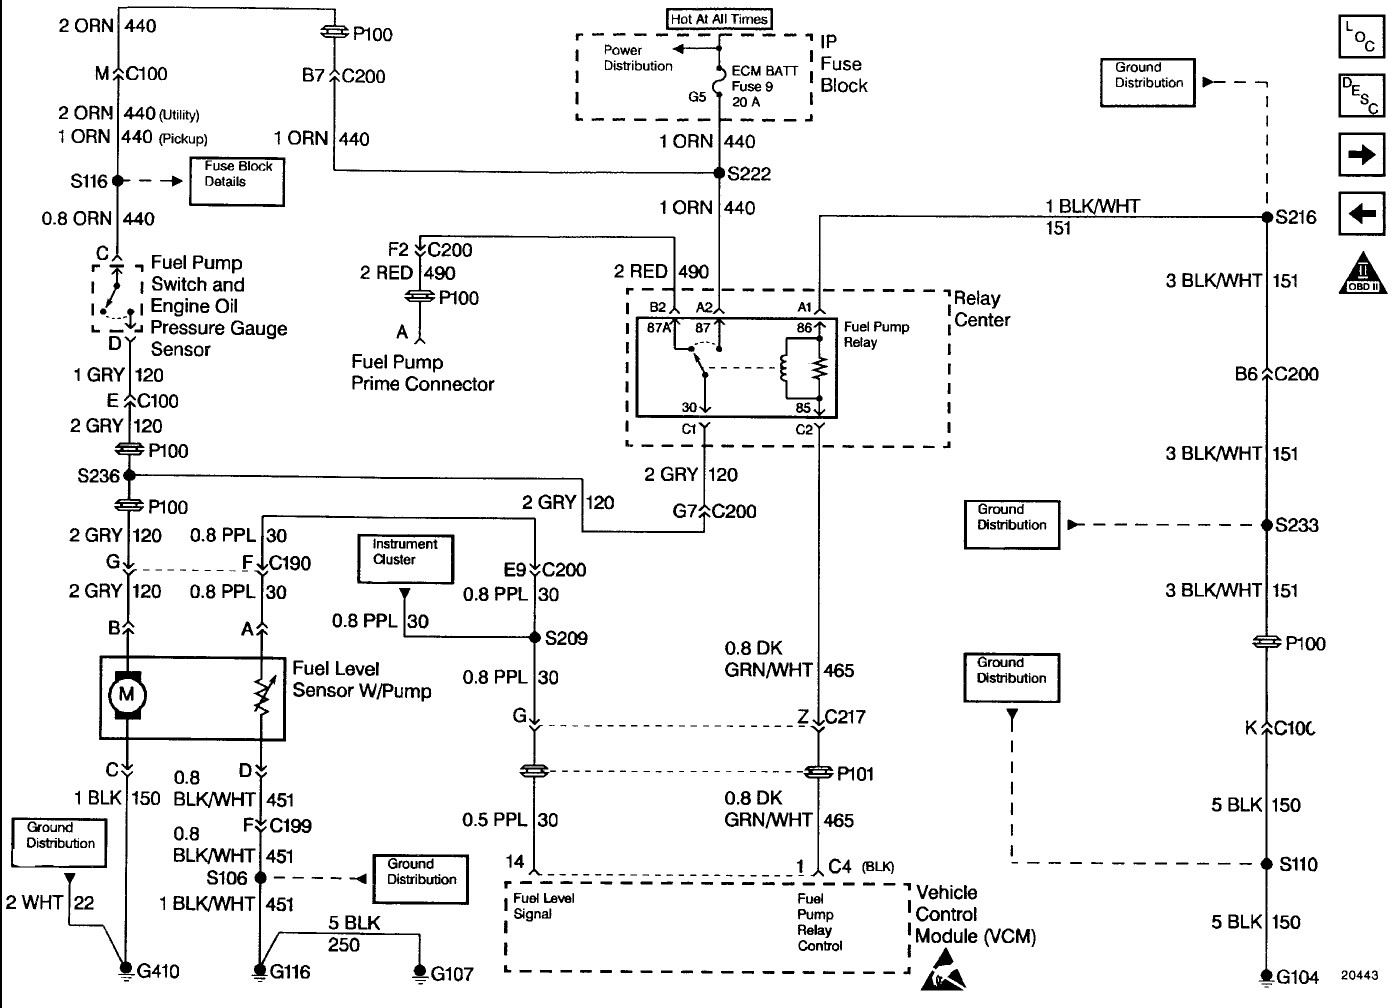 [DIAGRAM_5NL]  BZ_3226] Chevy S10 Fuel Line Wiring Diagram | 98 Chevy S10 Fuel Wiring |  | Weveq Epete Isra Mohammedshrine Librar Wiring 101